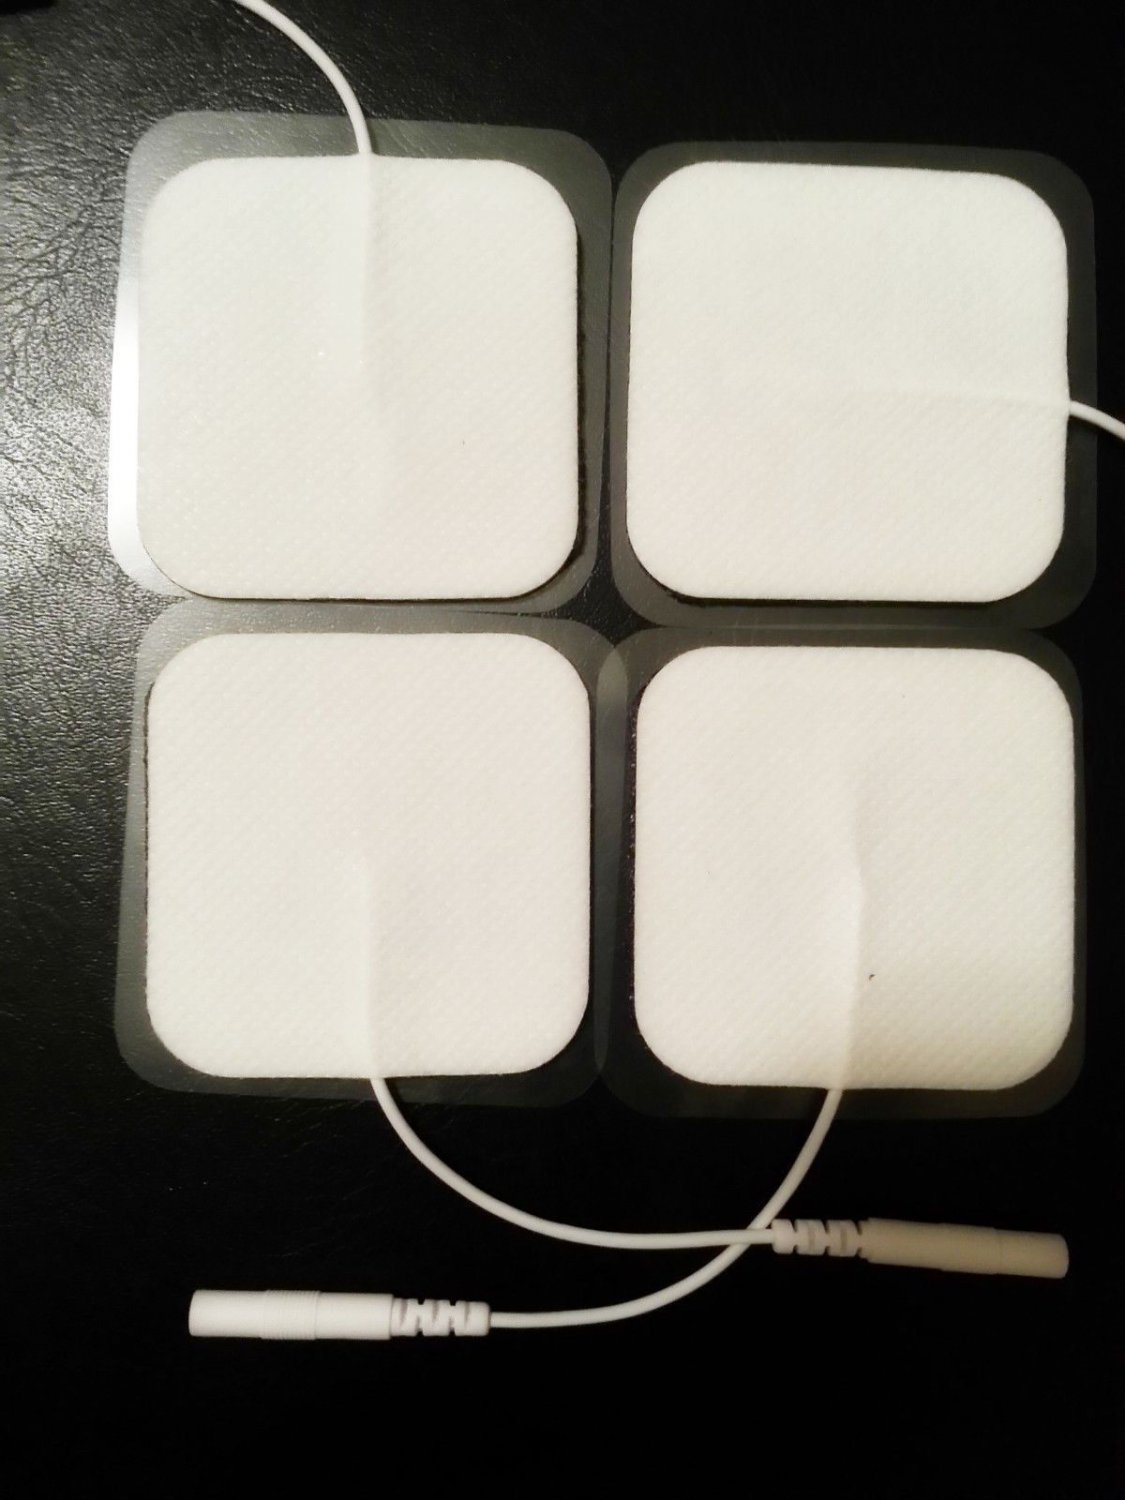 """SQUARE SHAPED GEL ELECTRODES(4)SELF ADHESIVE MASSAGE PADS 2""""X2"""" FOR THERAPY TENS"""